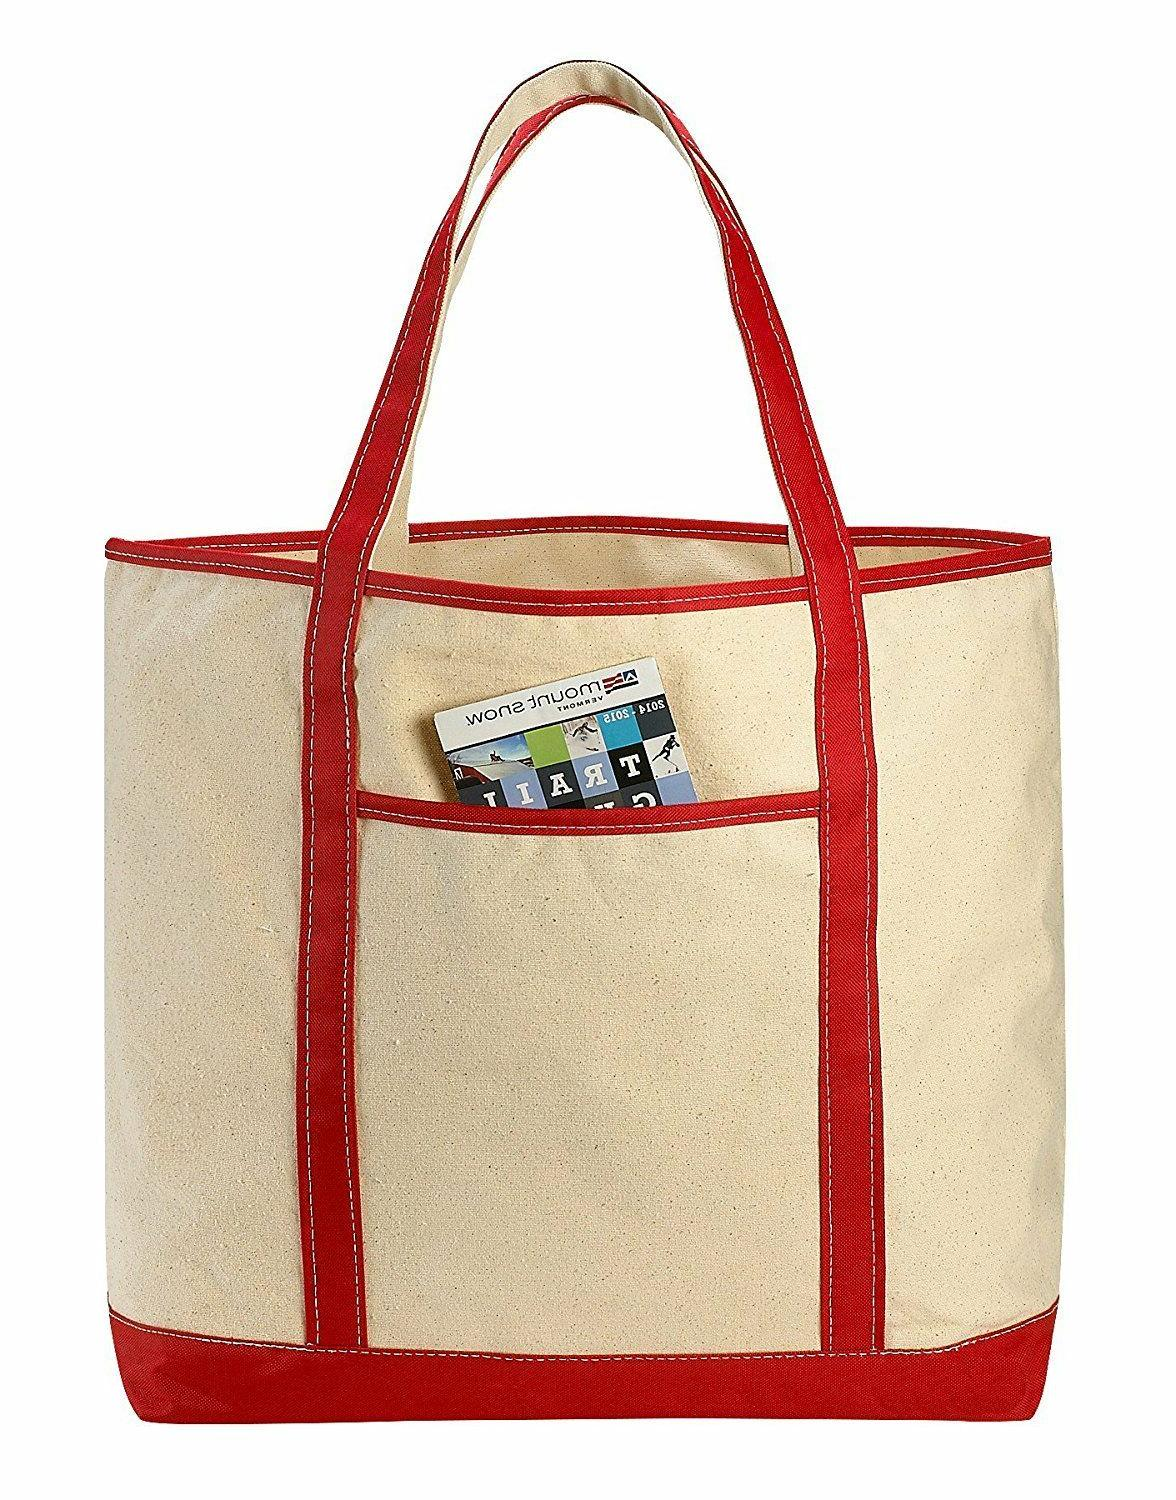 LARGE Canvas Reusable Grocery Shopping Bag Boat Tote Totes B